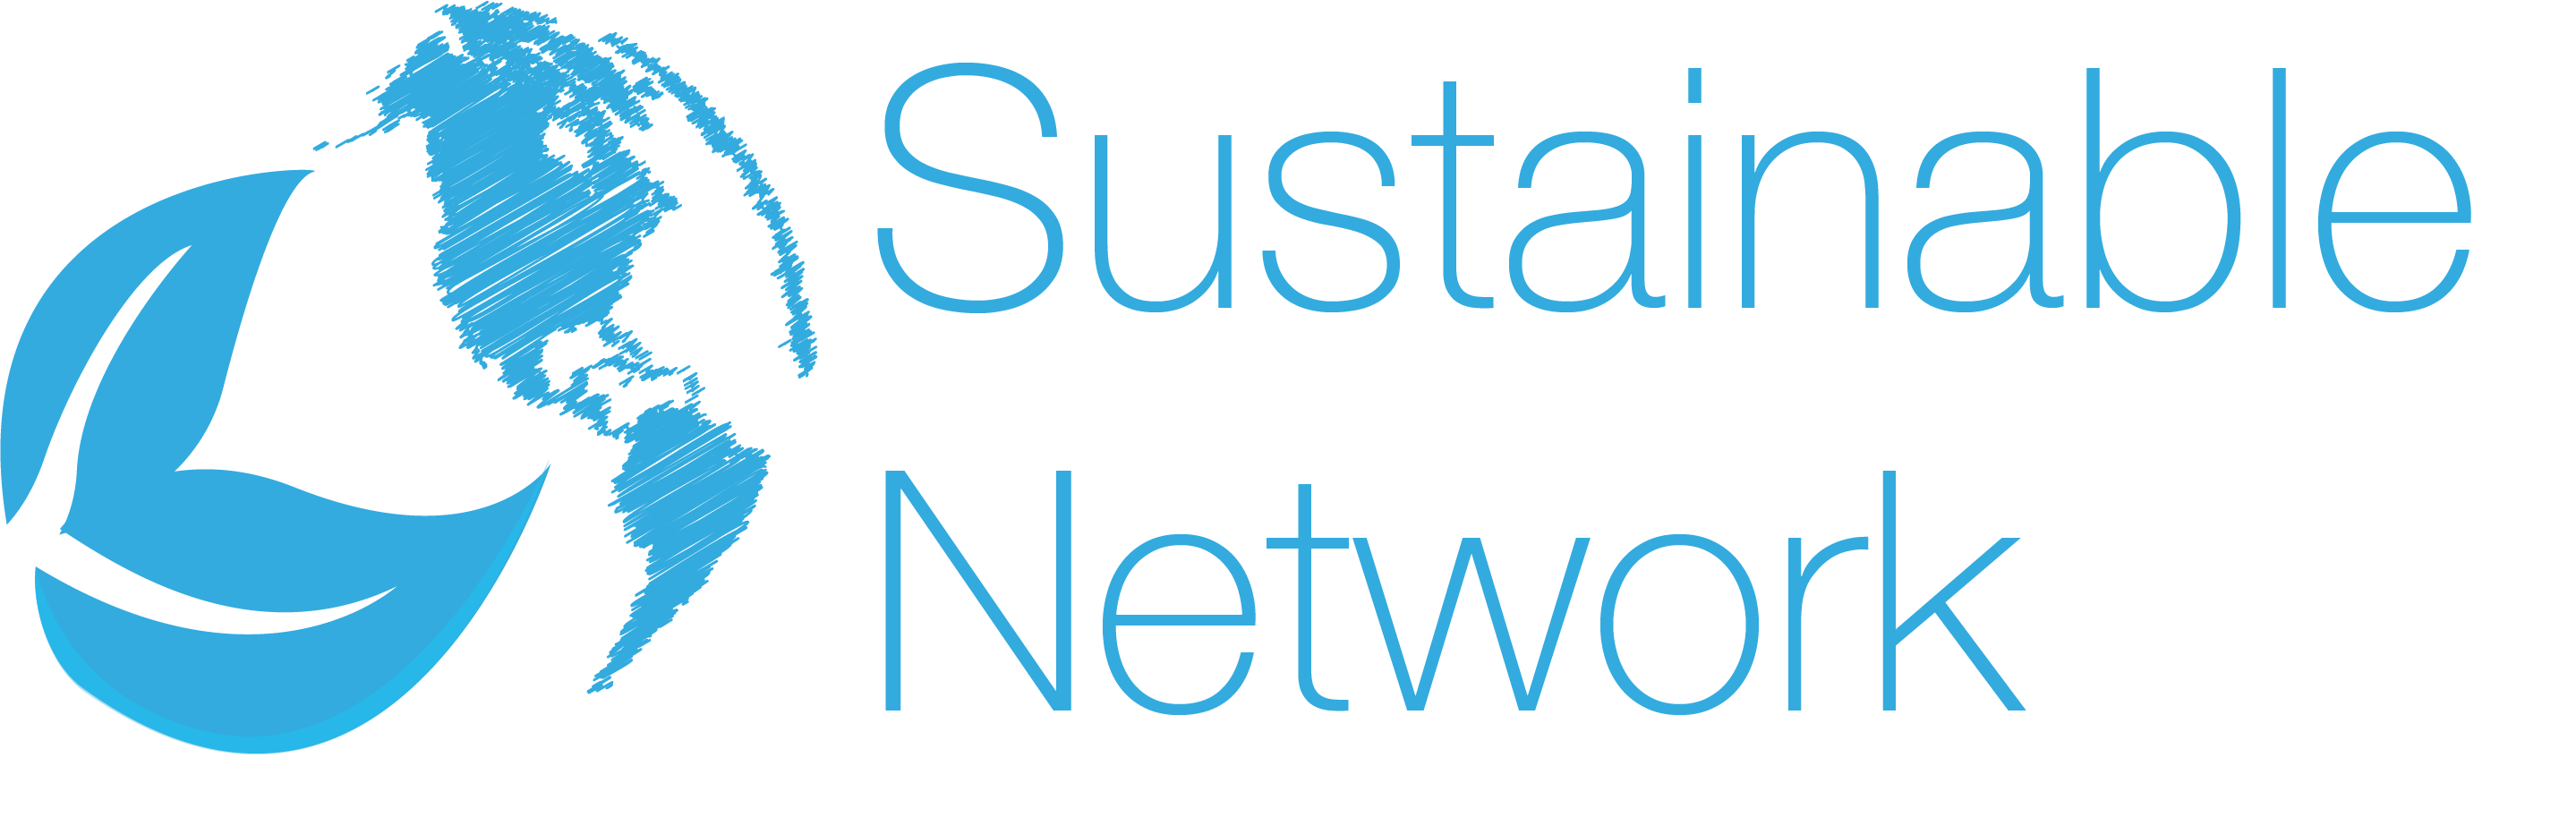 sustainable-network-logo-1